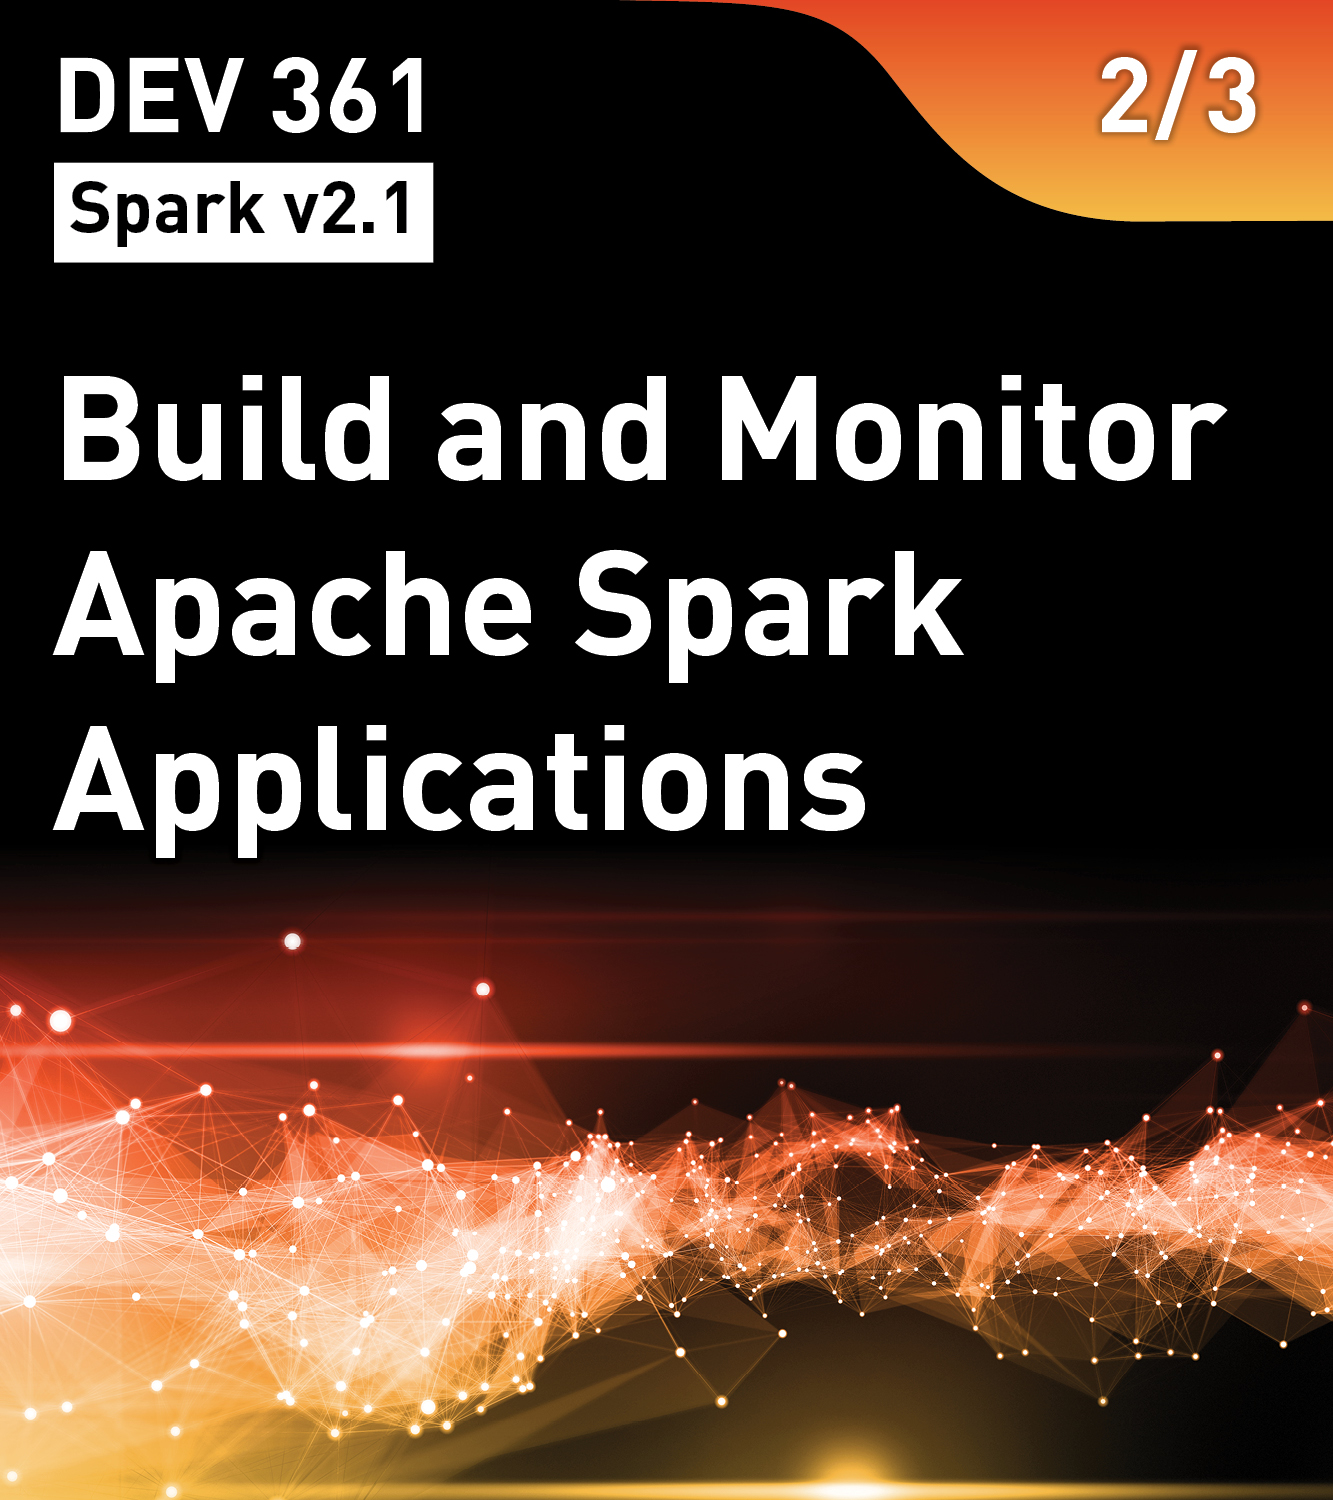 DEV 361 - Build and Monitor Apache Spark Applications (Spark v2.1)